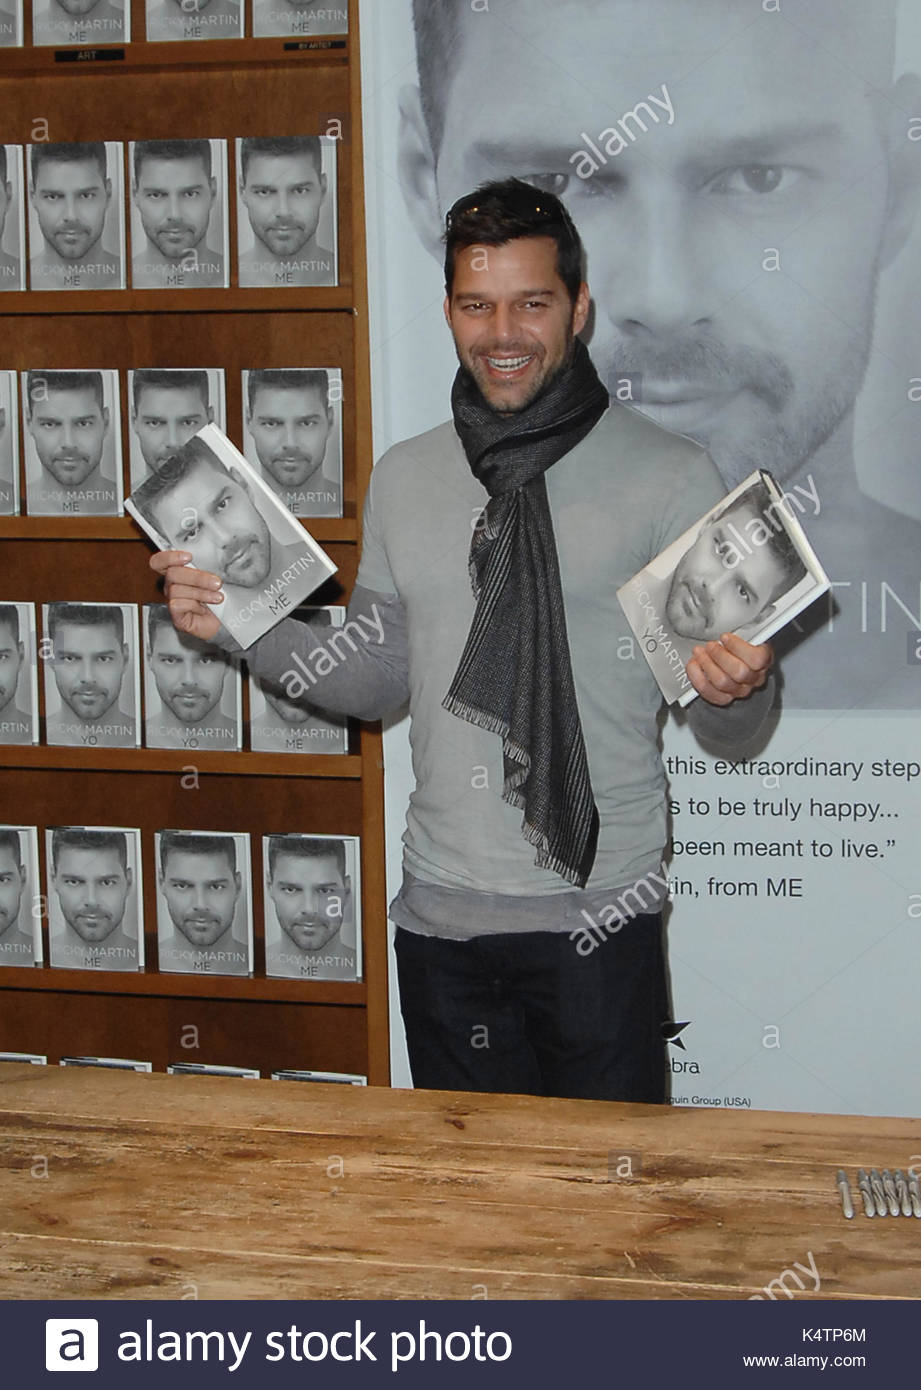 ricky martin book signing for me stock photos ricky martin book signing for me stock images. Black Bedroom Furniture Sets. Home Design Ideas